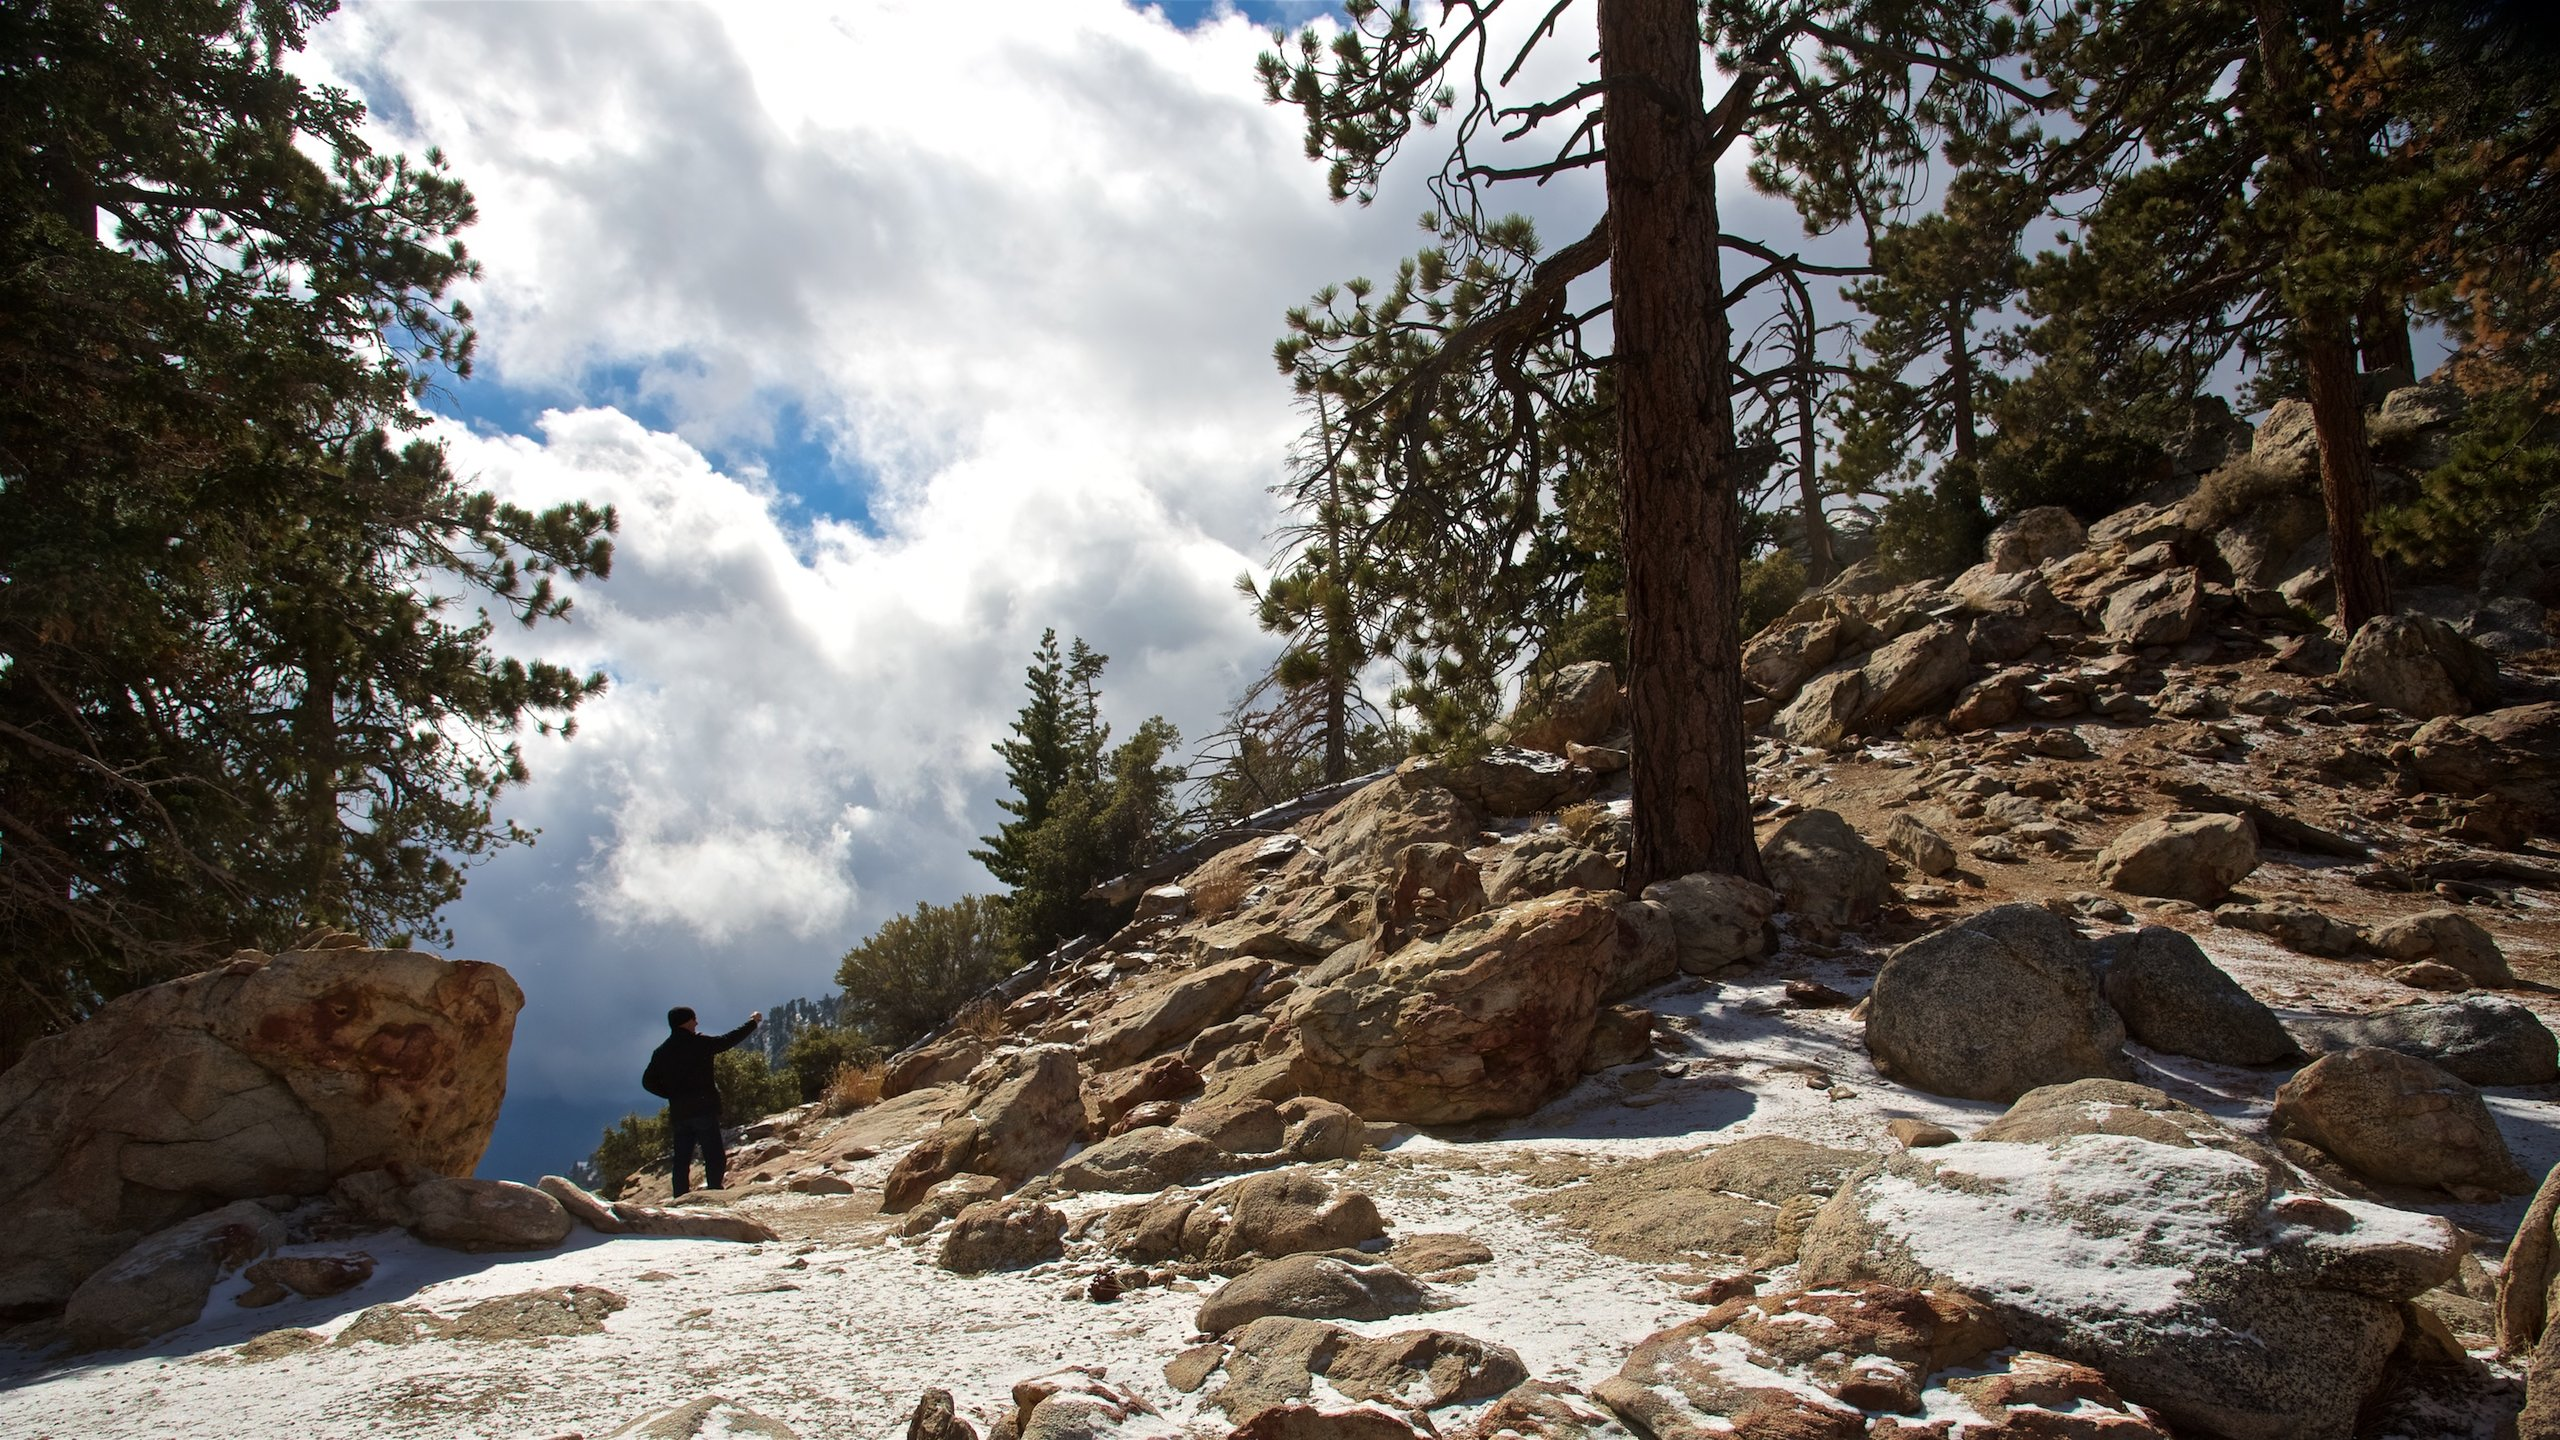 Mount San Jacinto State Park, Palm Springs, California, United States of America